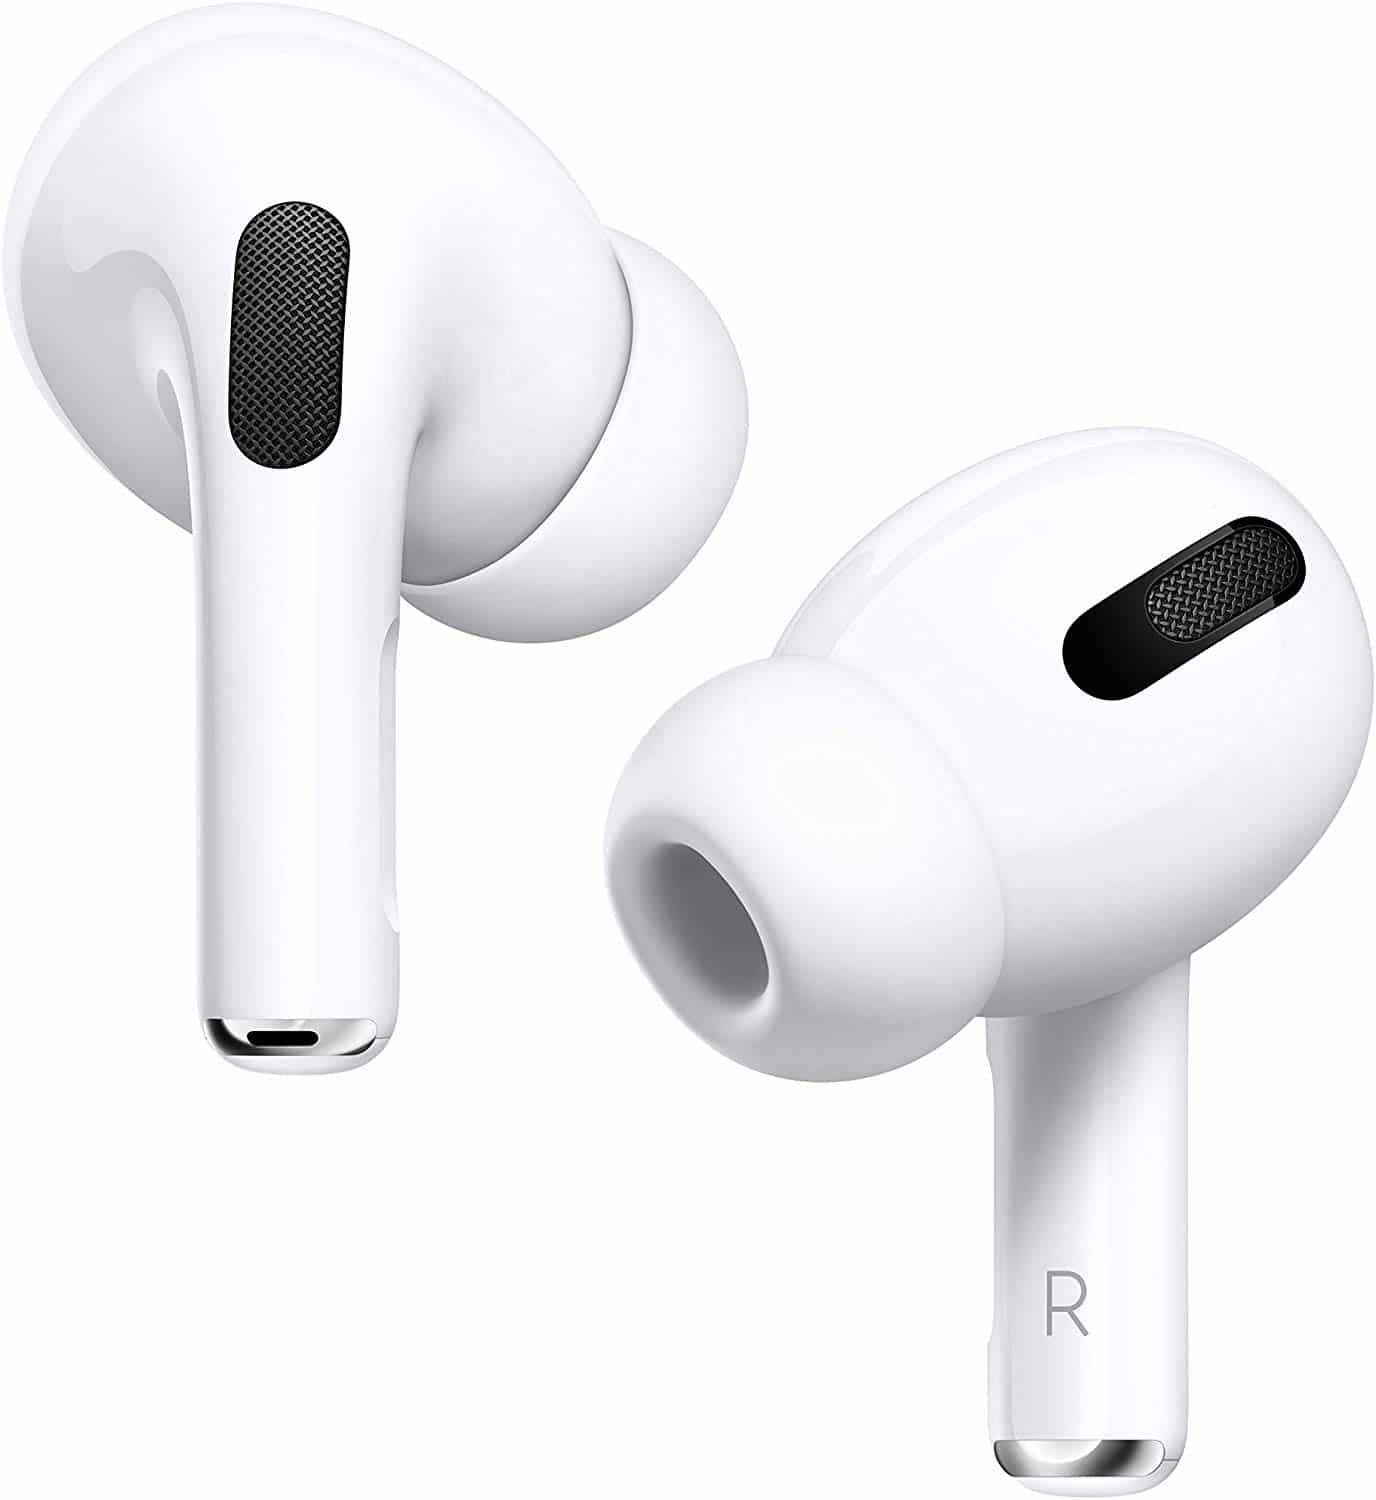 Apple AirPods Pro: A Complete Review